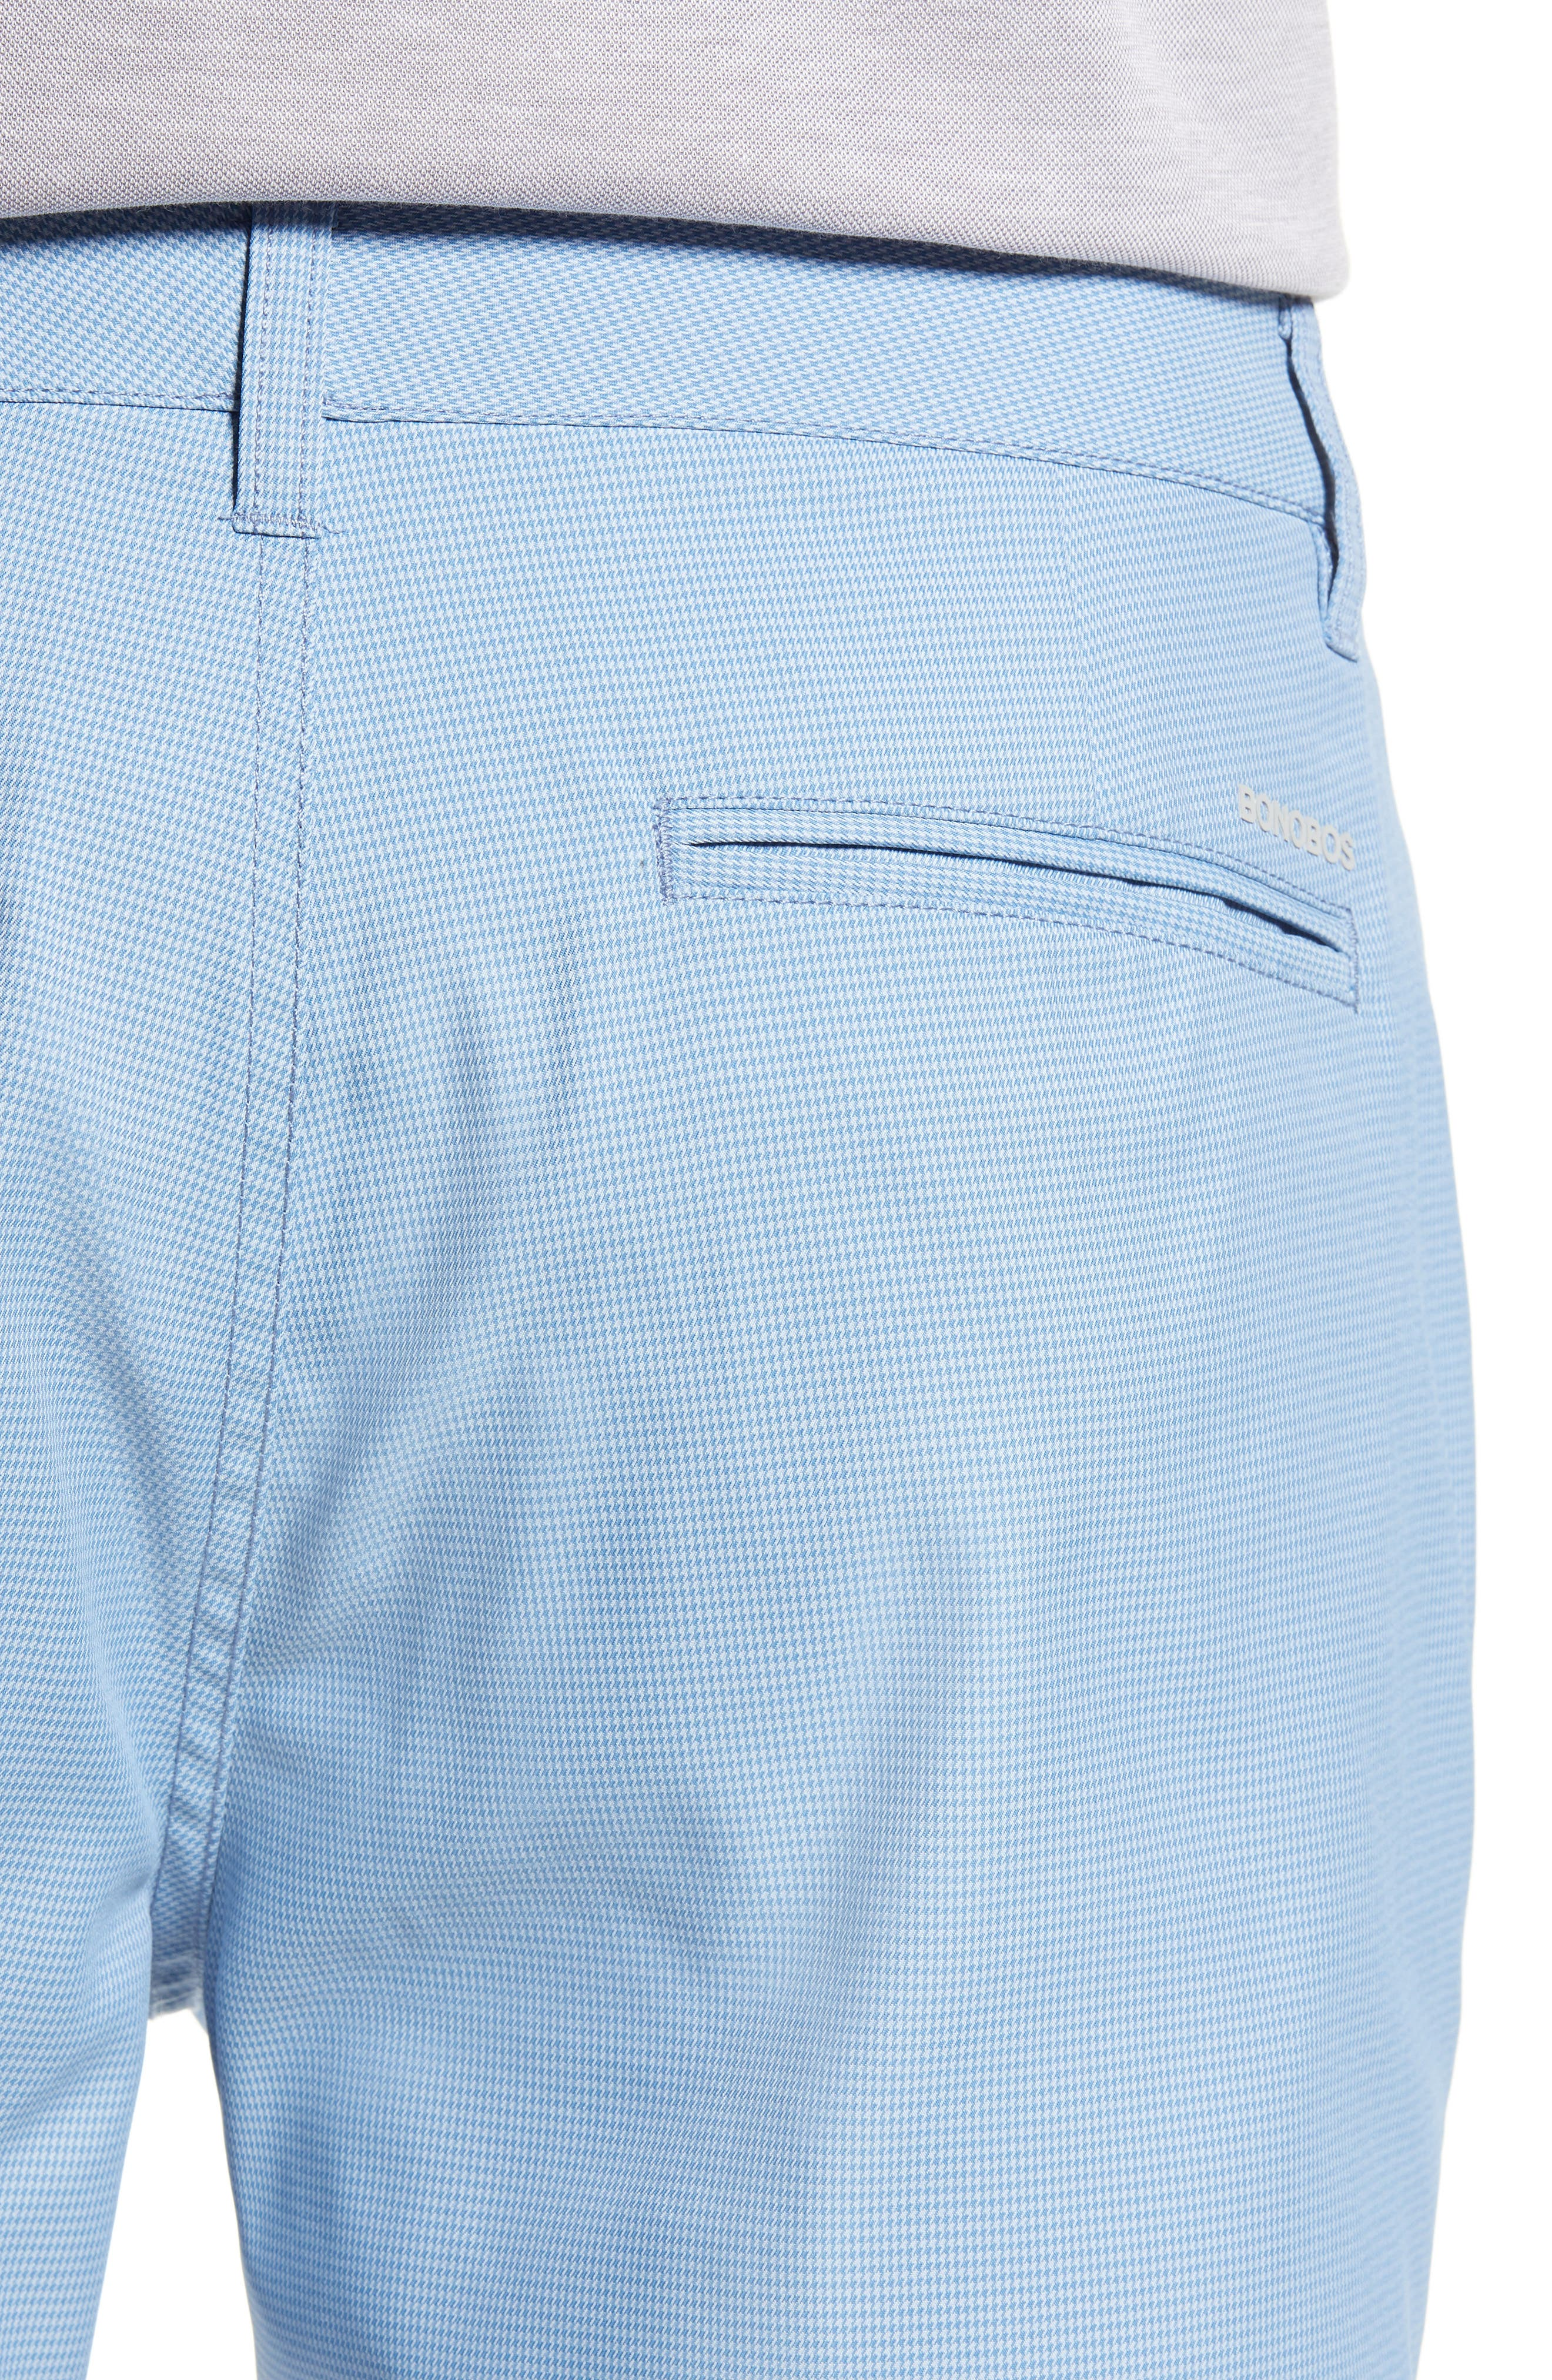 BONOBOS, The Highland Micro Houndstooth Golf Shorts, Alternate thumbnail 4, color, BLUE MINICHECK C3